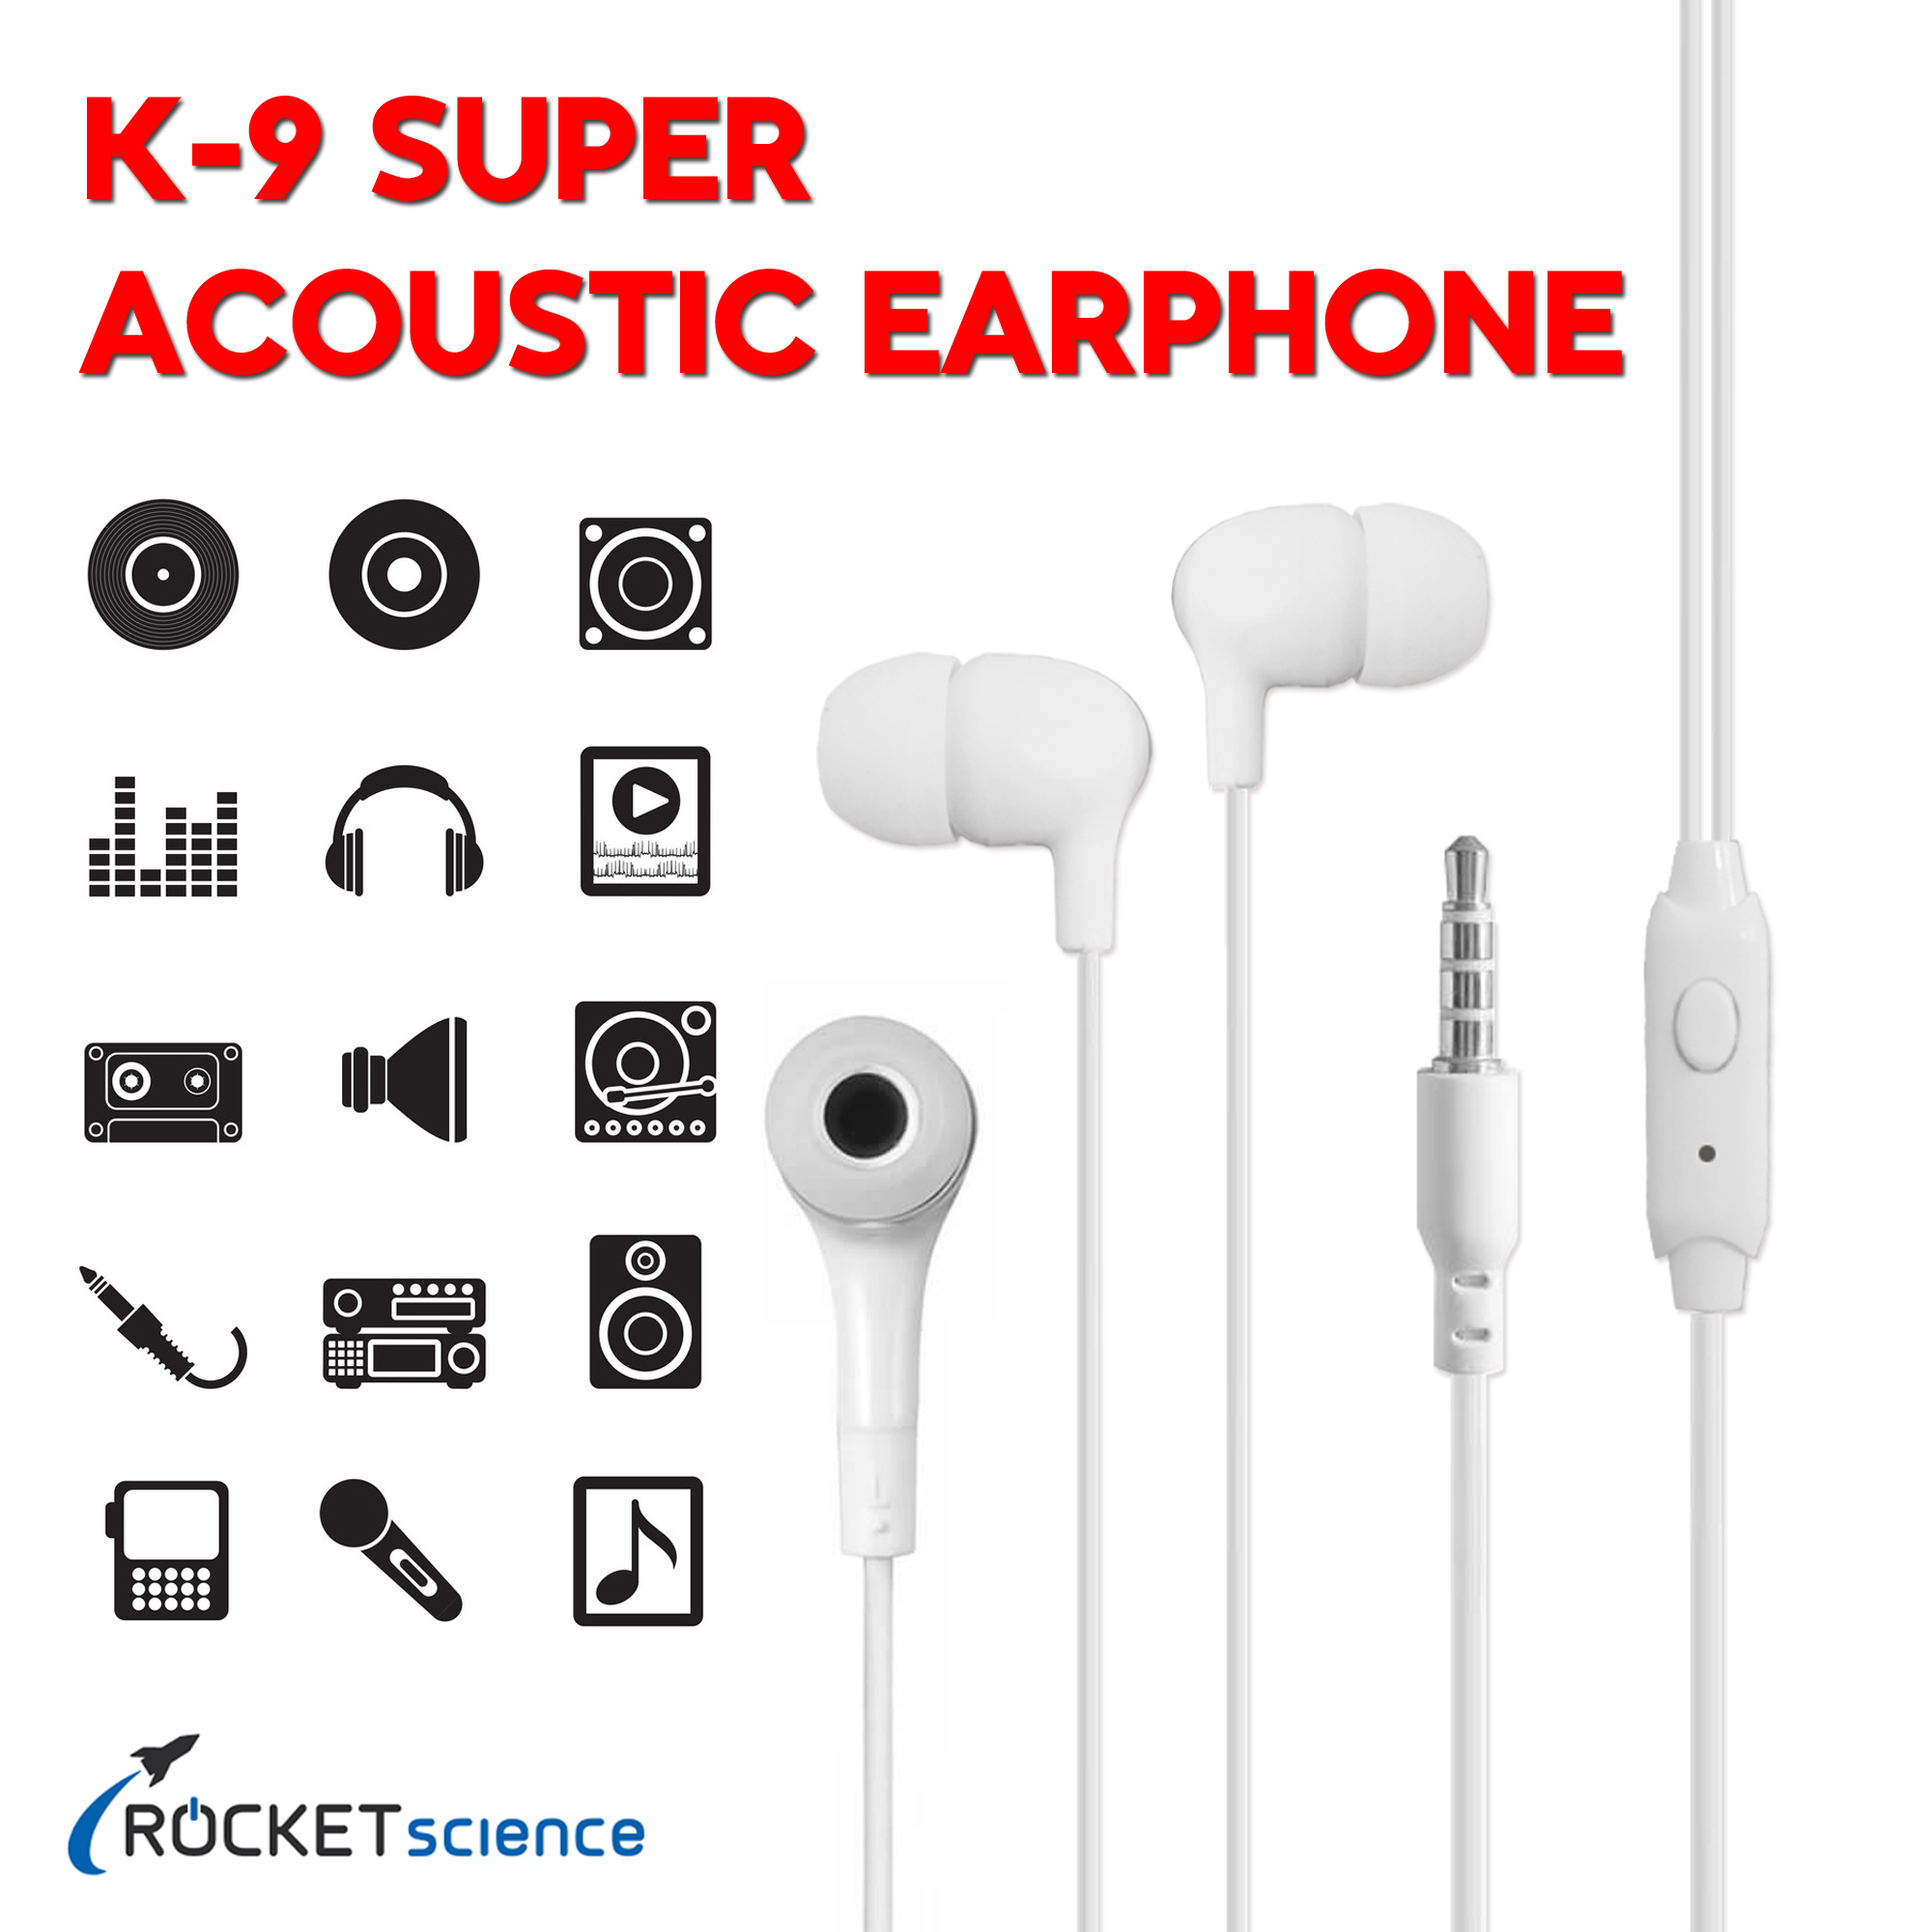 Universal Mobile Headsets & Earphones Handsfree for All Android Mobile Phones